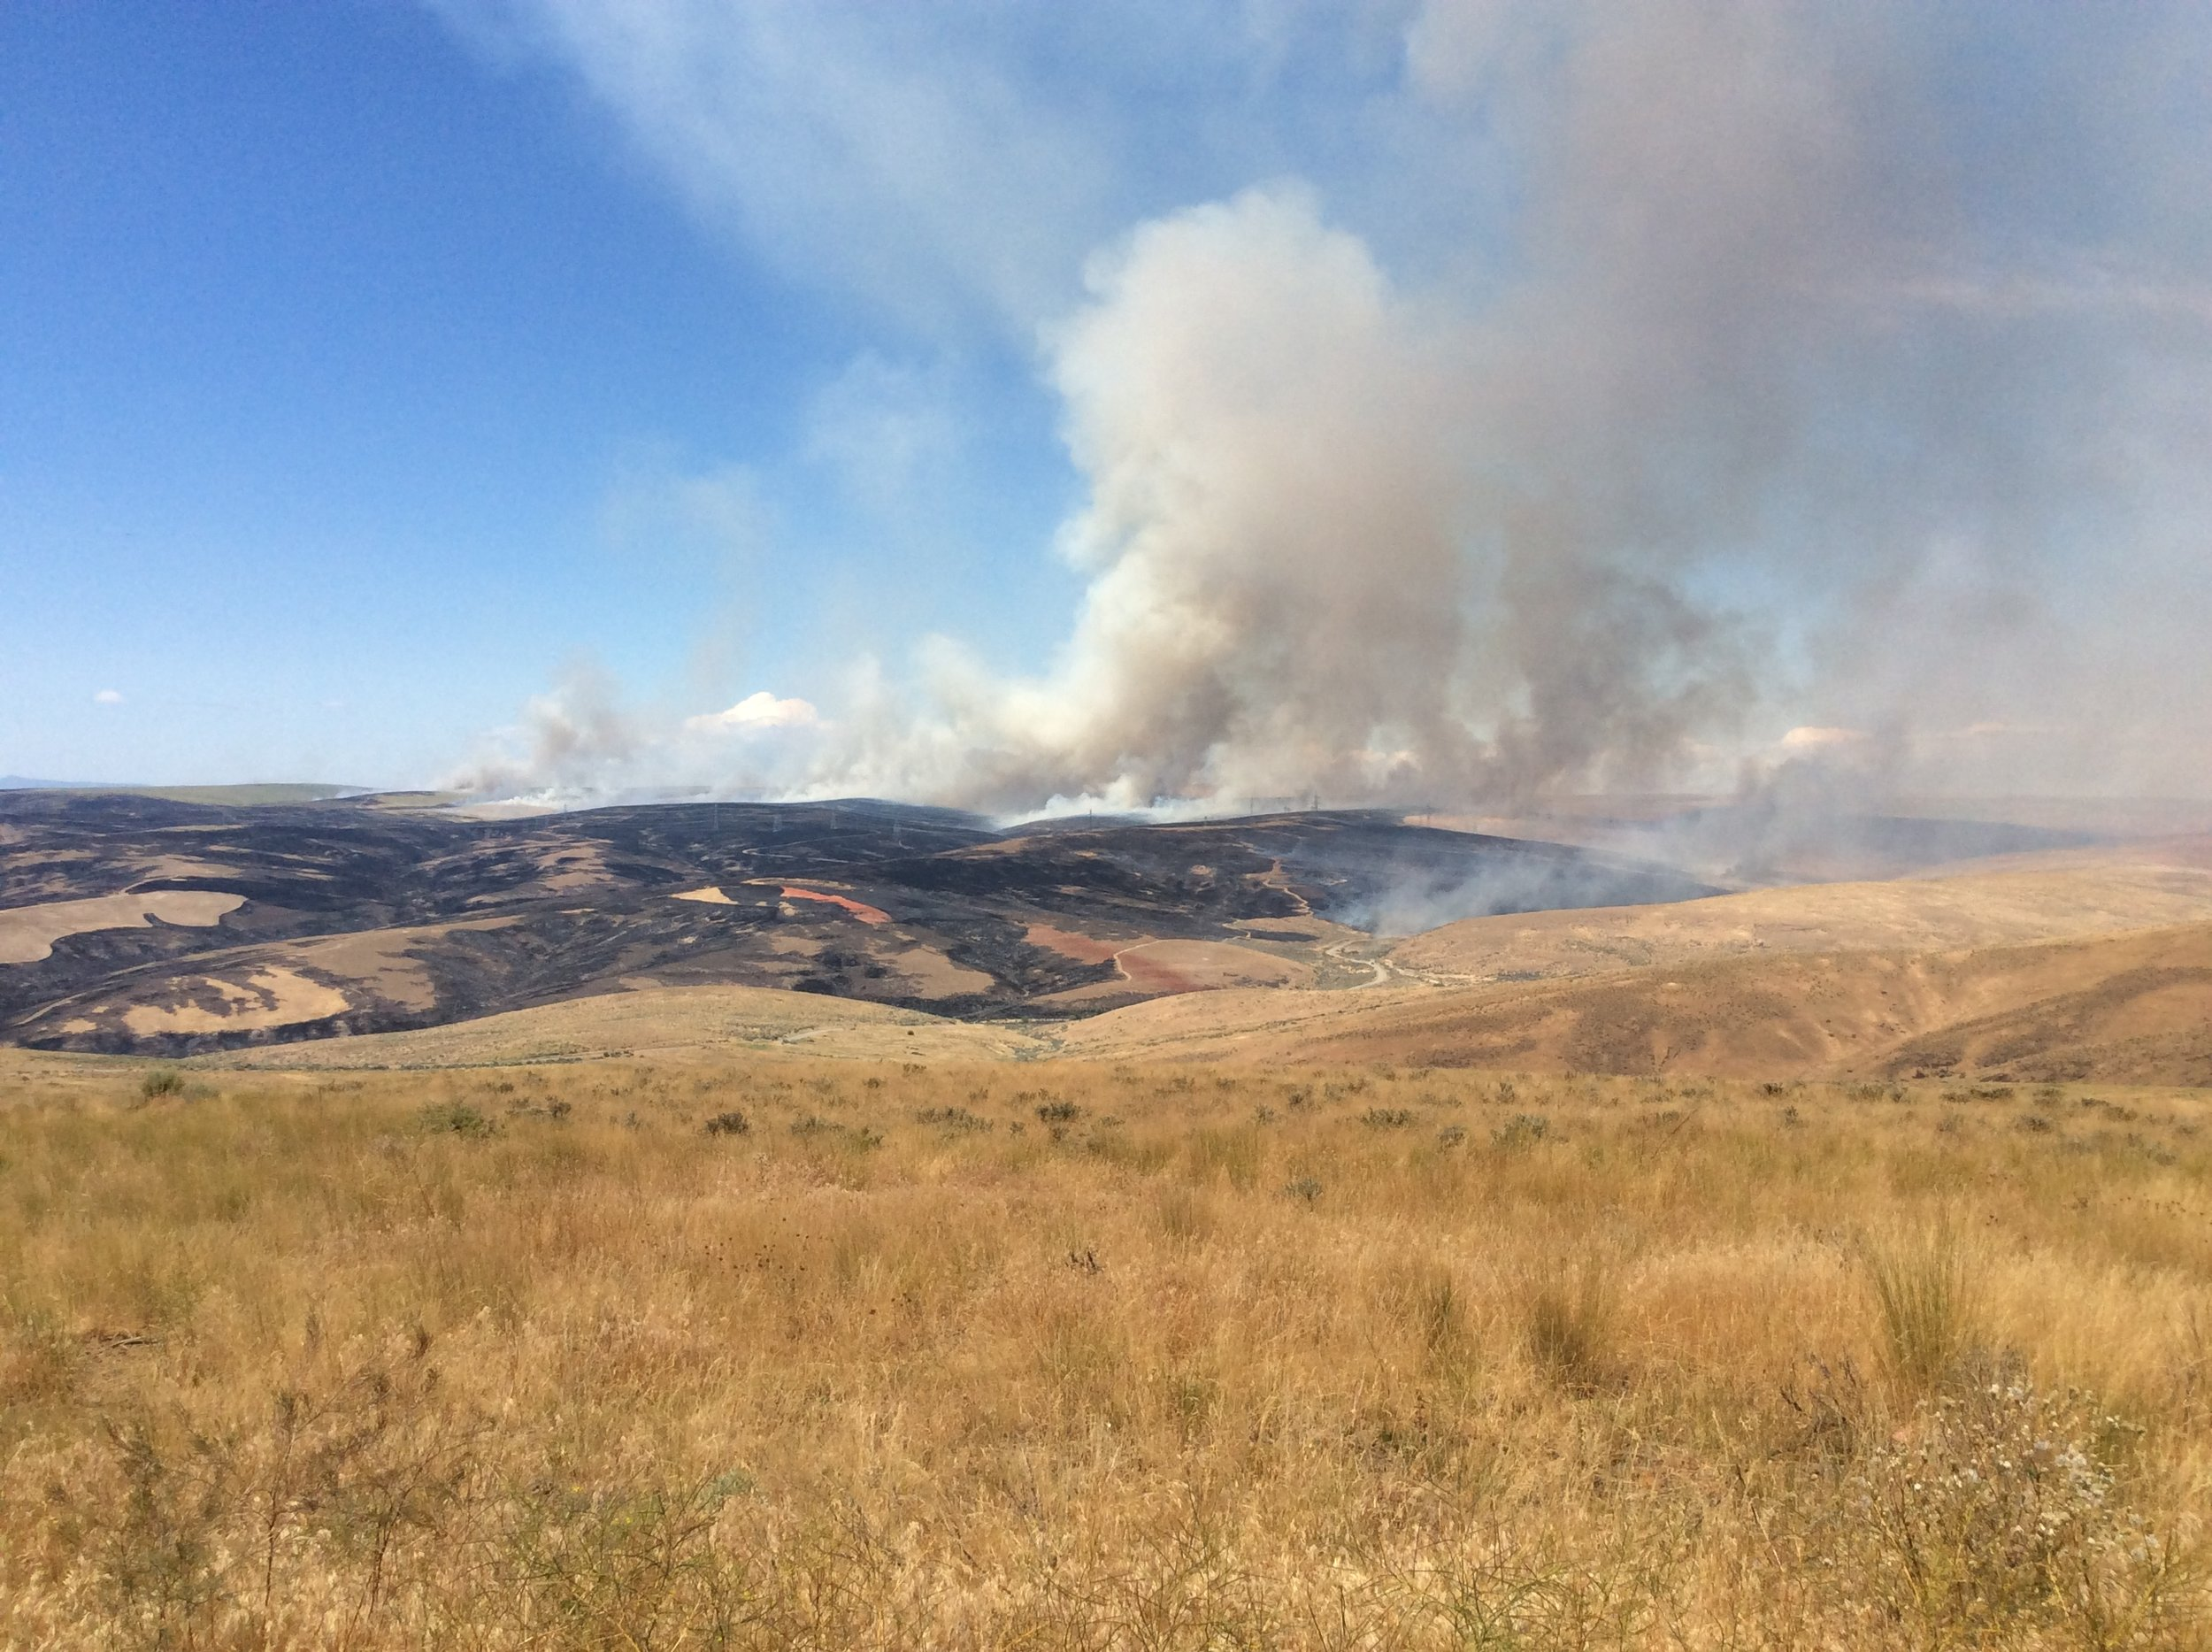 Fire approaches our Beezley Hills Preserve on June 28. Our land is in the foreground and on the right of the picture. Photo by Corinna Hanson/TNC